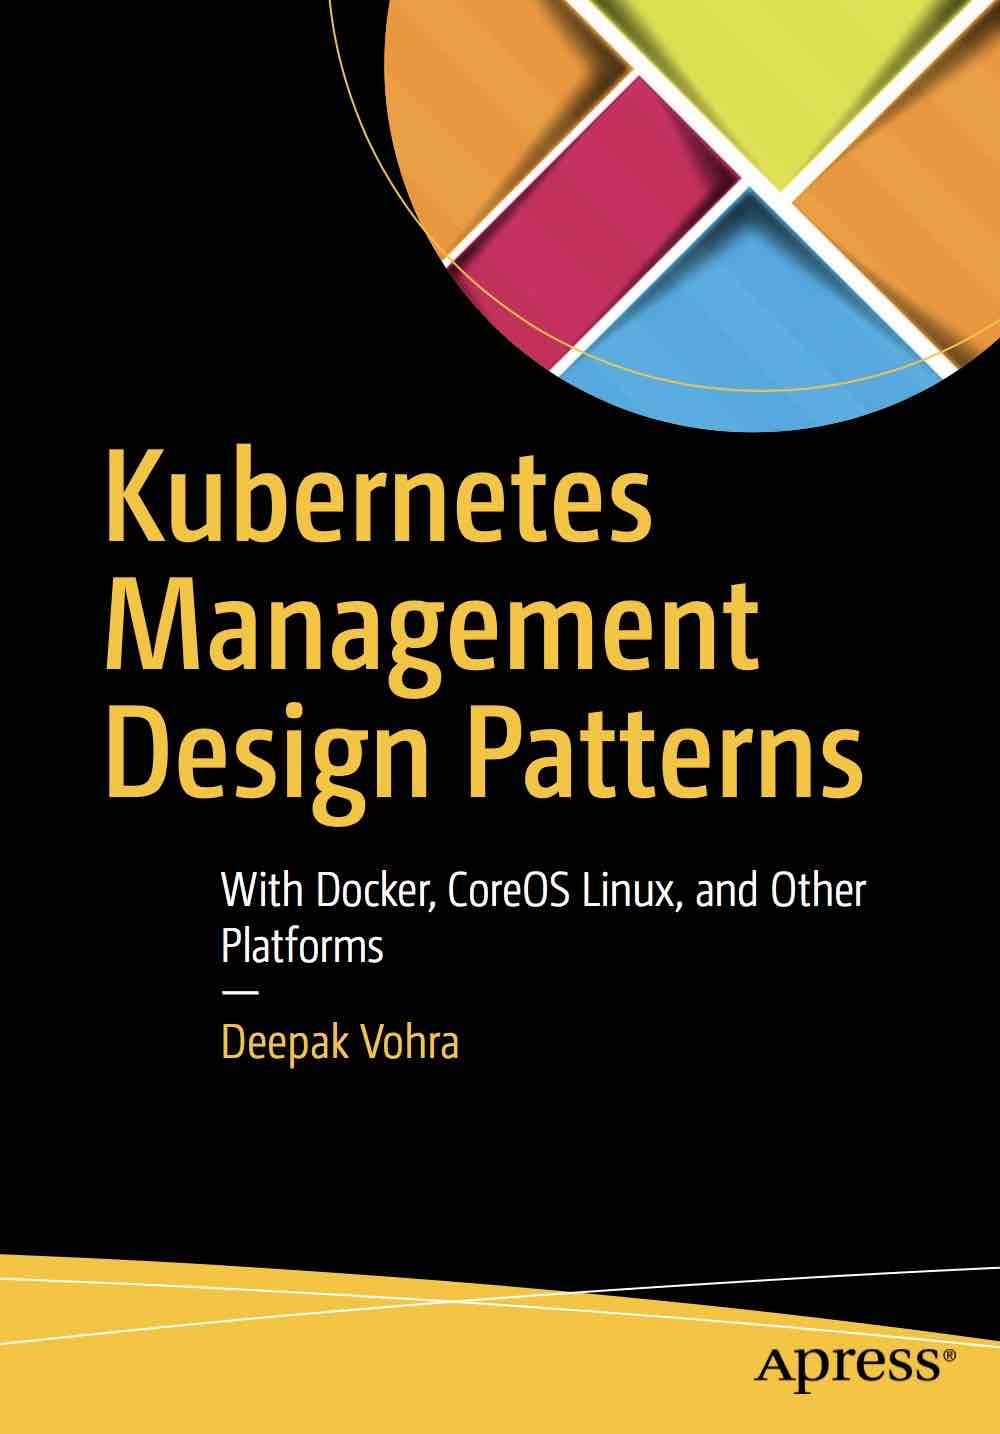 kubernetes management design patterns 书籍封面